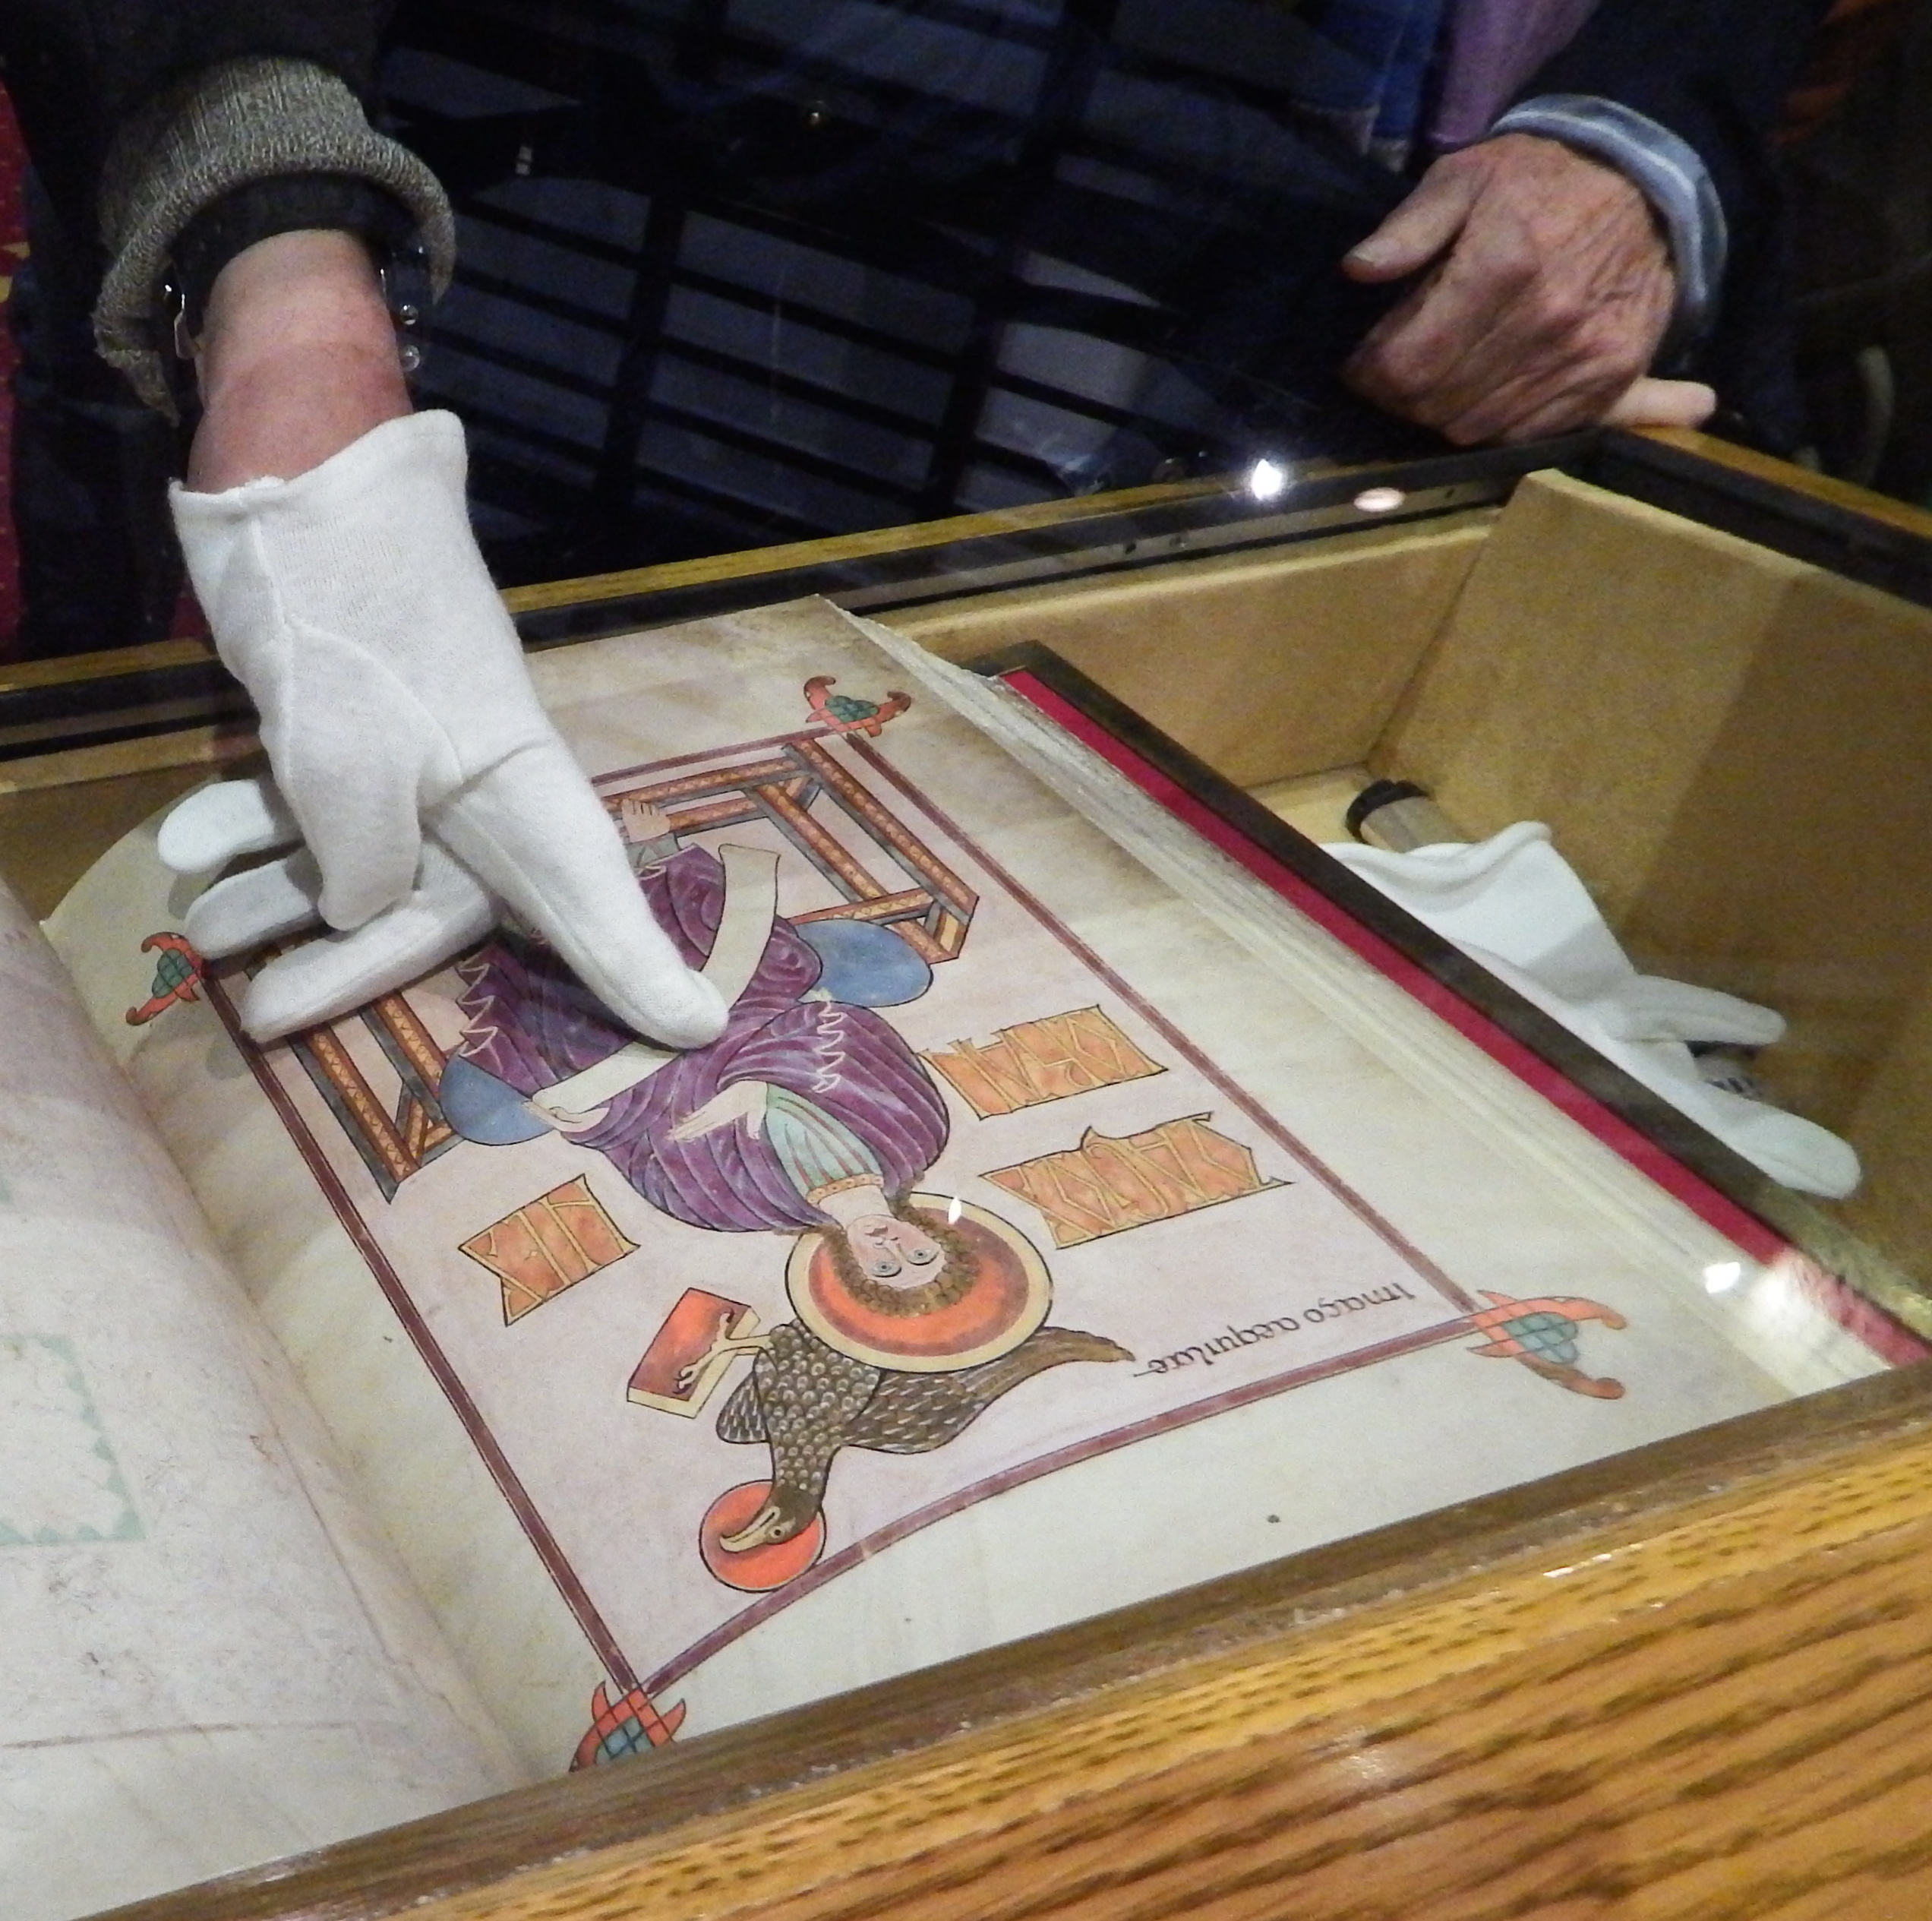 Facsimile of the Lindisfarne Gospels at Chester-le-Street. Photograph by Richard Twinch